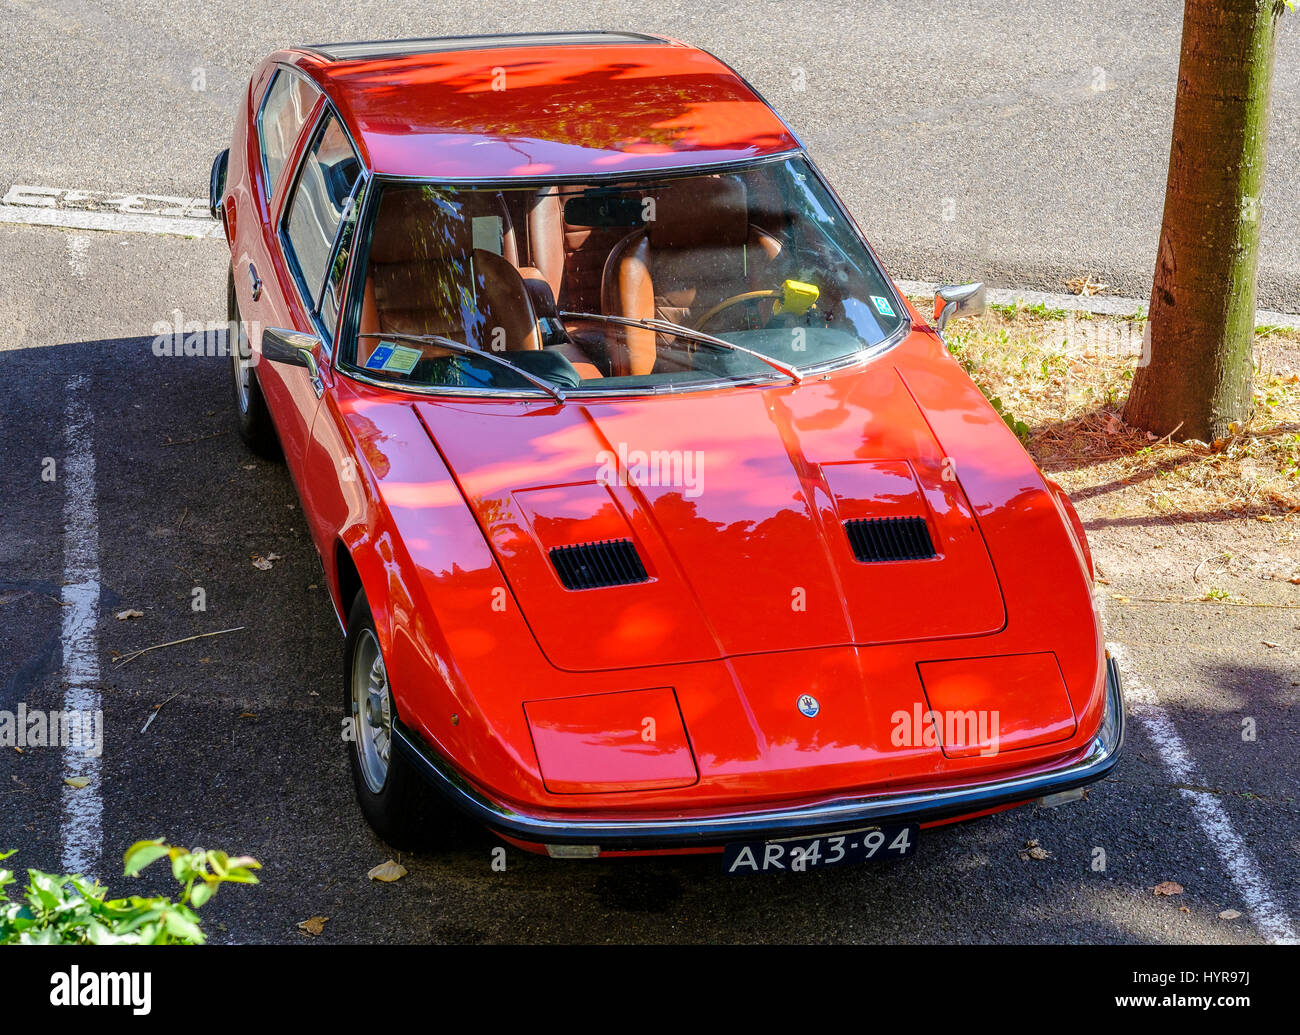 Red Maserati Indy Italian sports car, Tipo AM 116, 2-door, 4-seater, Grand Tourer coupé, designer Giovanni - Stock Image